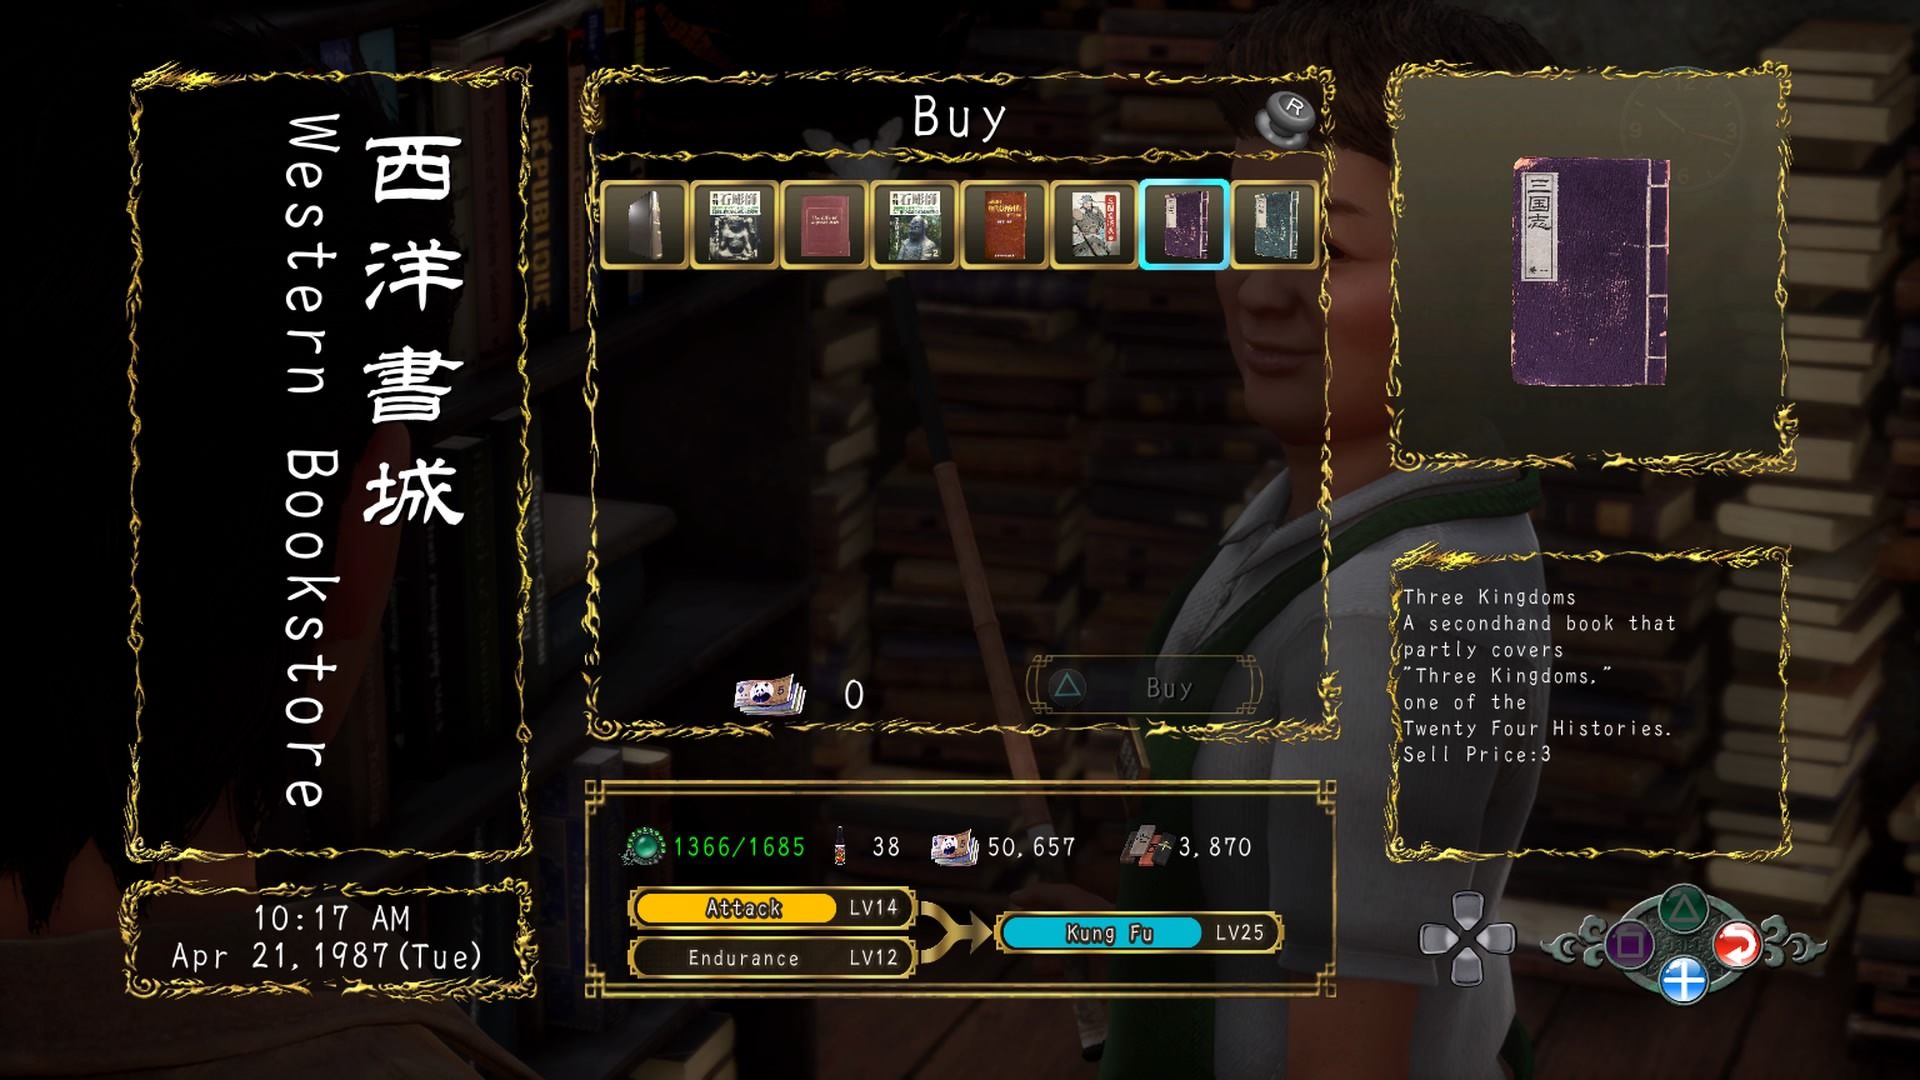 Shenmue 3: Earn Money (Yuan) Faster with This Exploit The Three Kingdoms